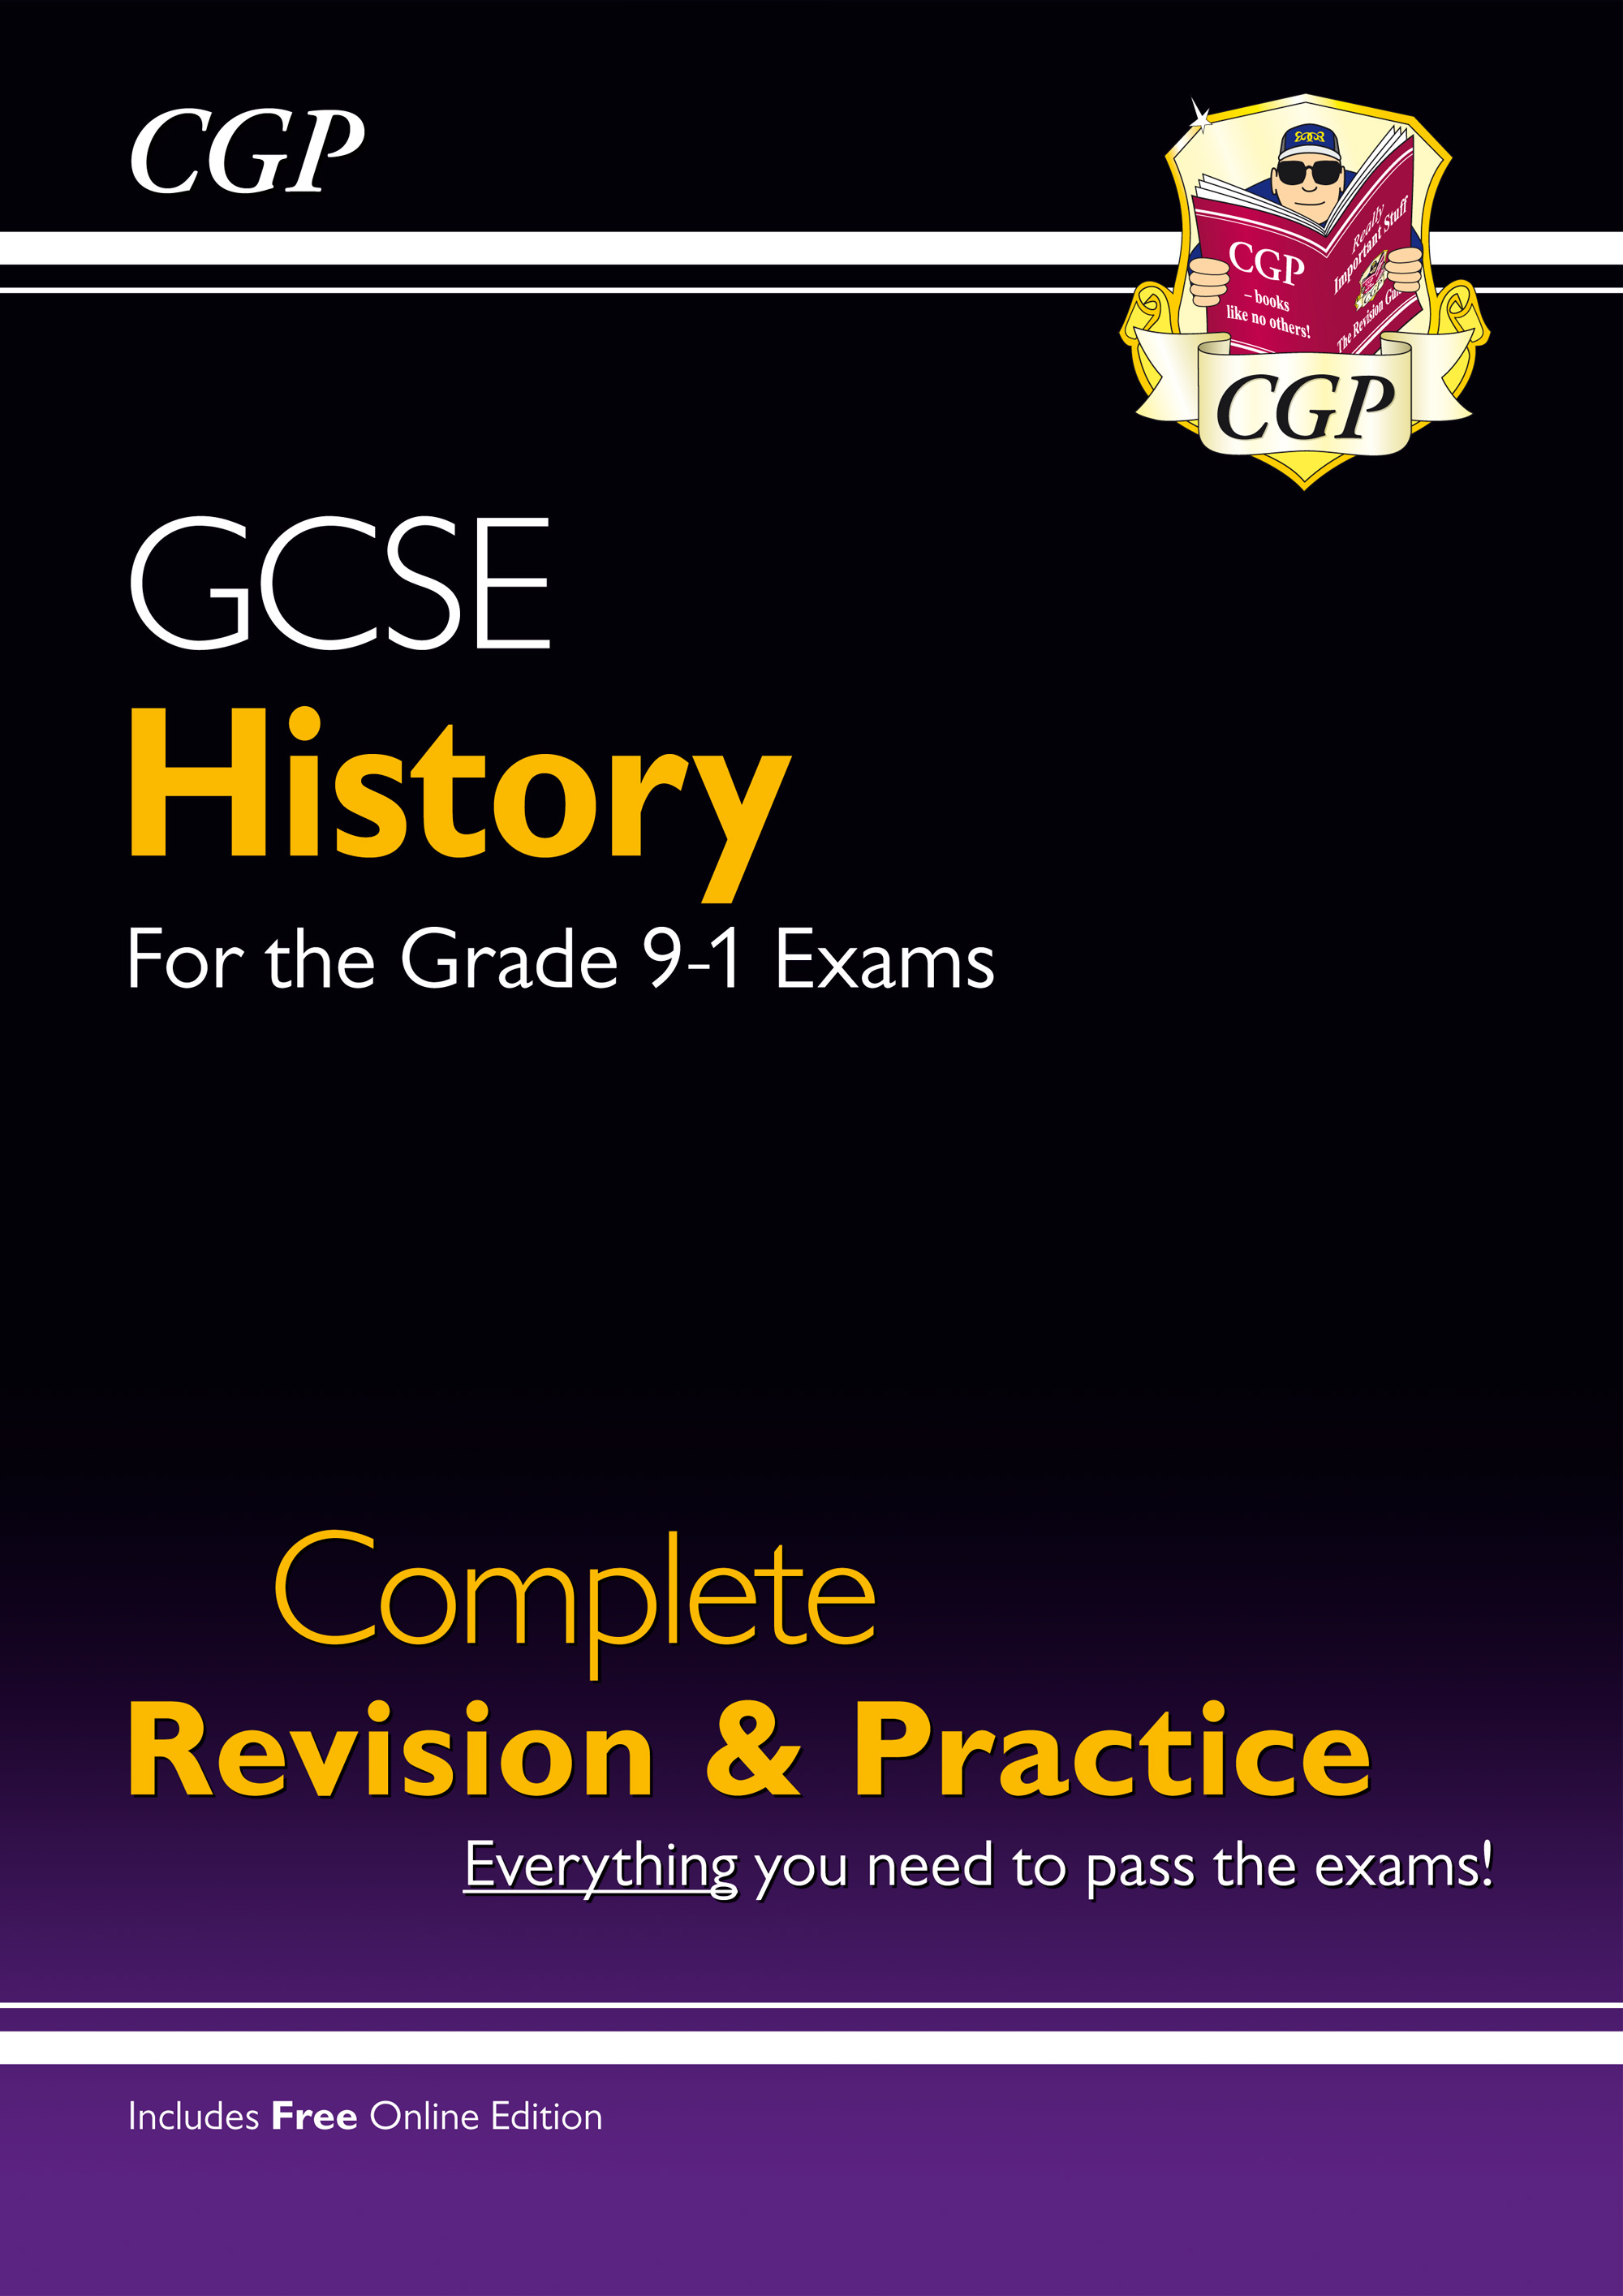 HHS45 - GCSE History Complete Revision & Practice - for the Grade 9-1 Course (with Online Edition)